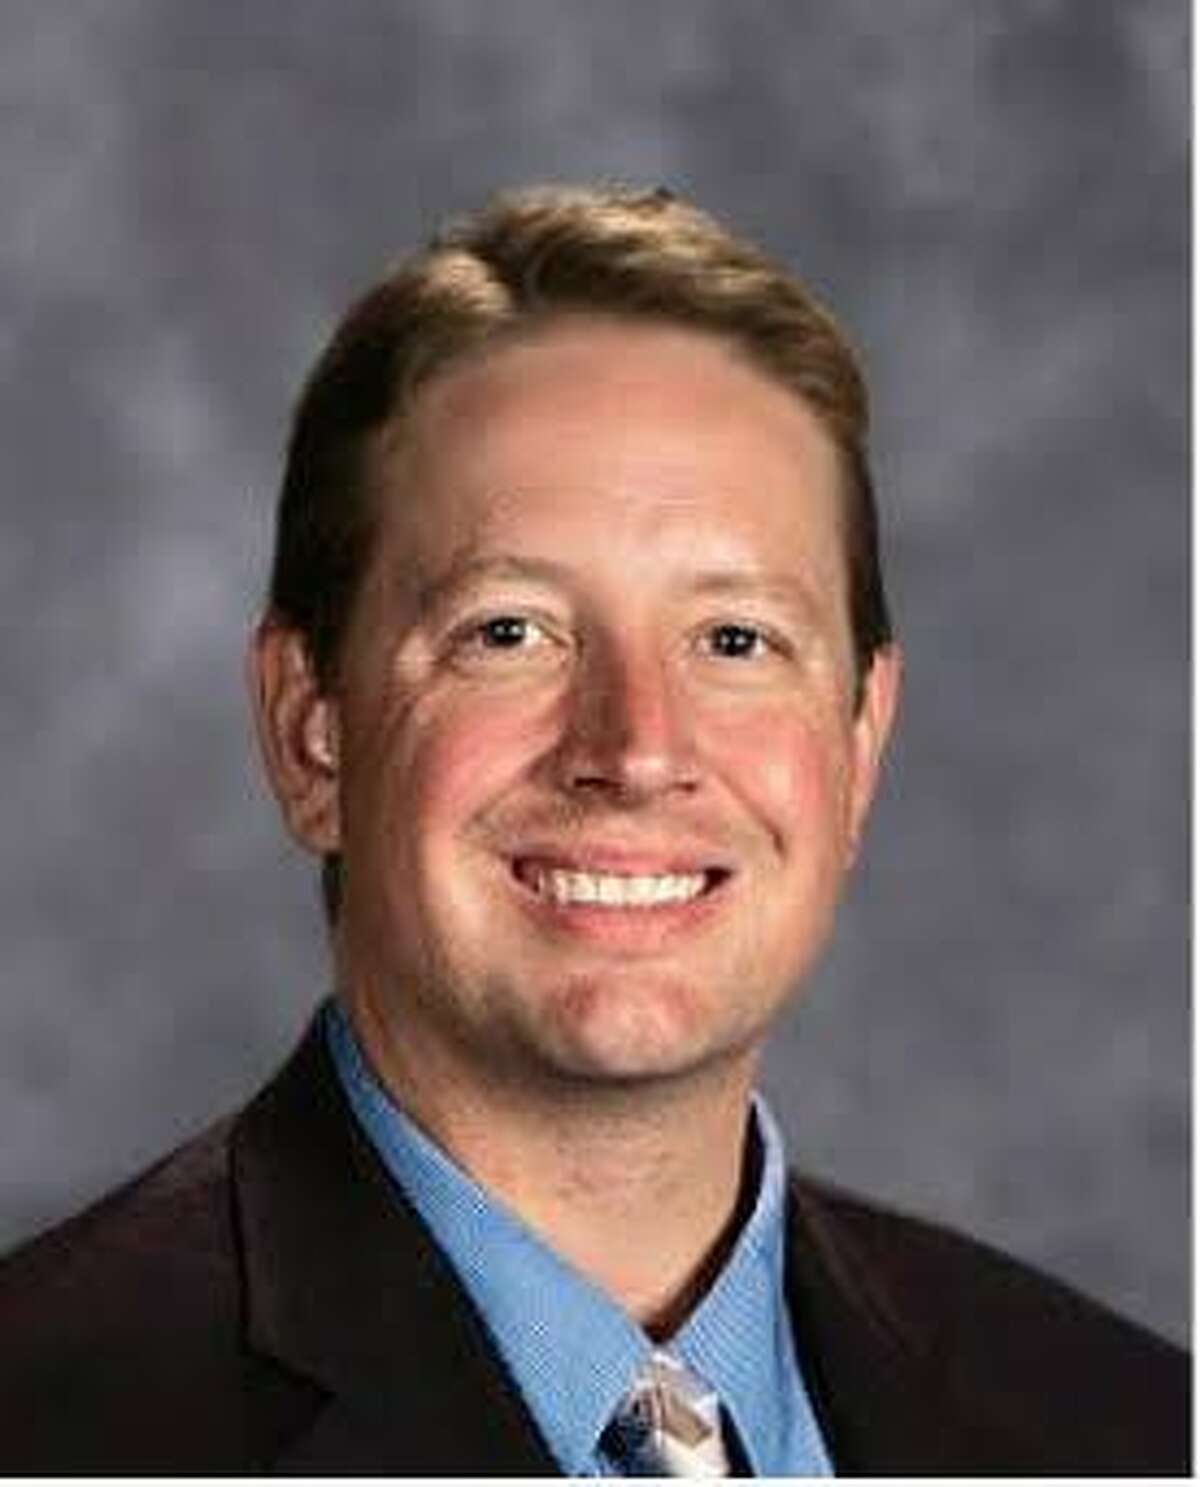 Assistant Principal for Darien Public Schools Andrew M. Byrne will join Greenwich High School as the Interim Folsom House Administrator, effective Nov. 5.